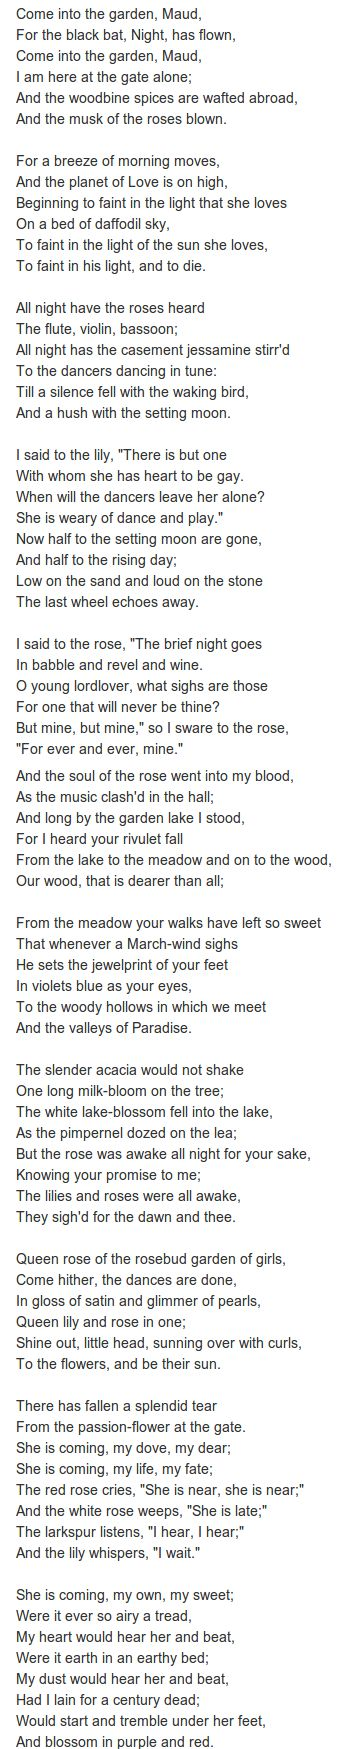 Lord Gardens And Poem On Pinterest